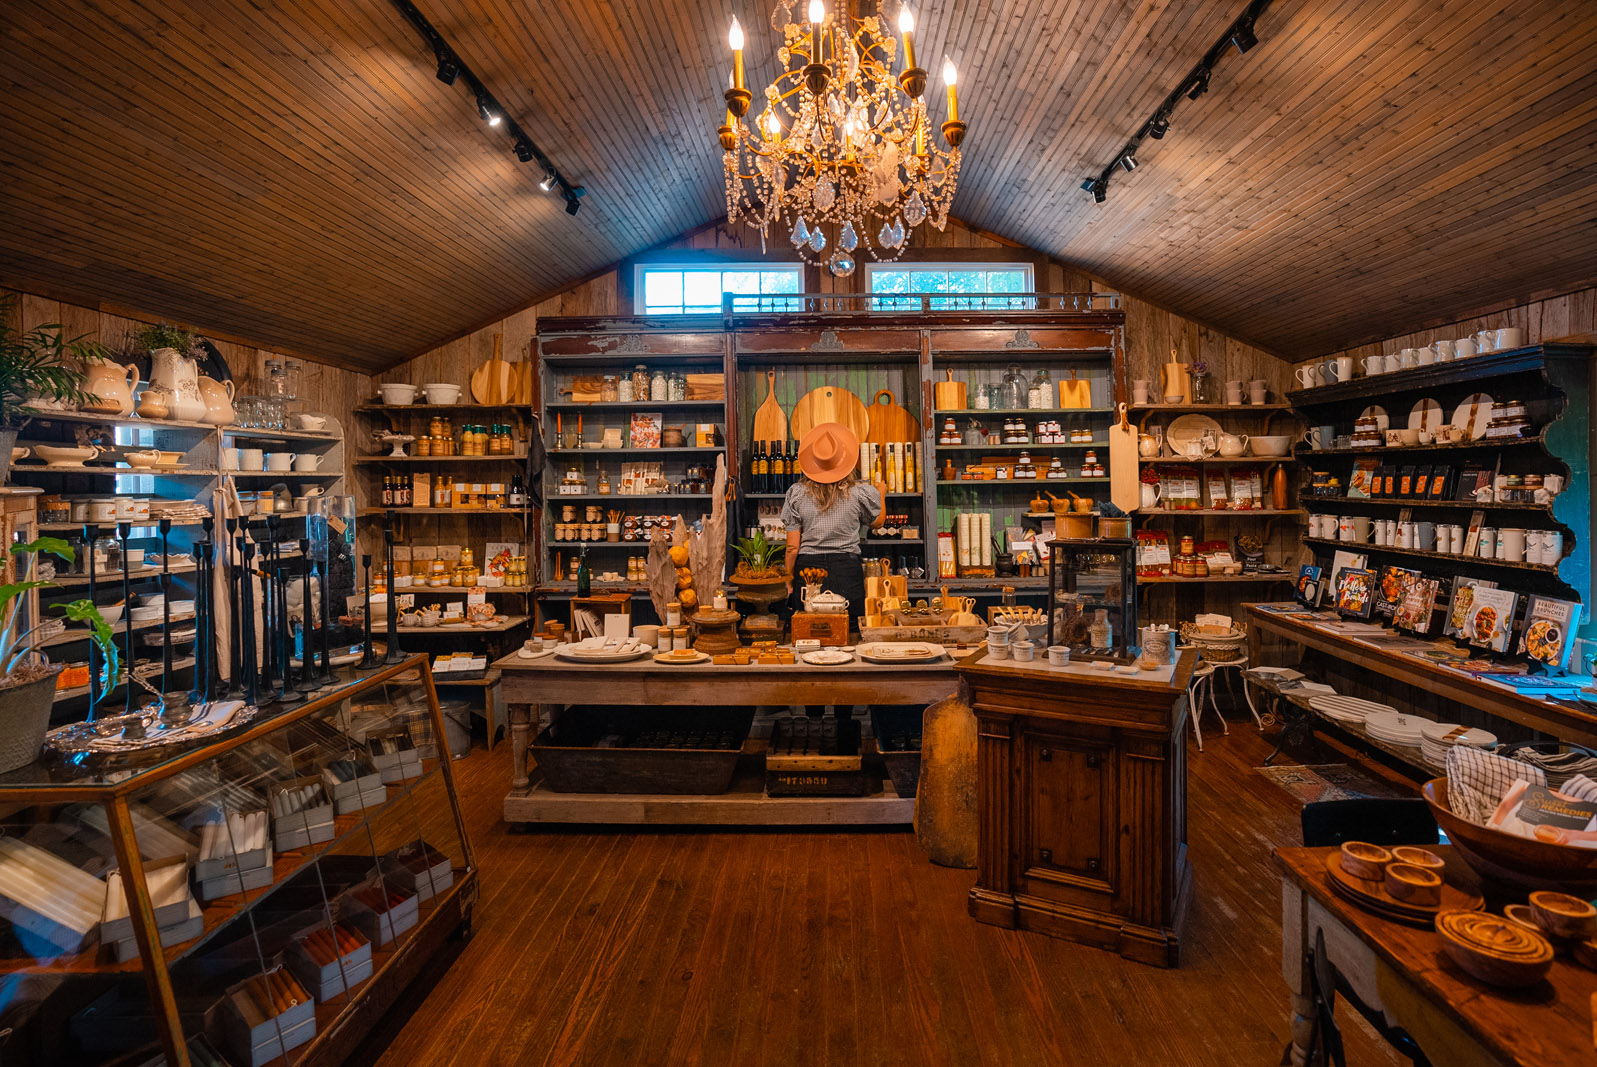 Interior of Serenite Maison on Leipers Fork Tennessee